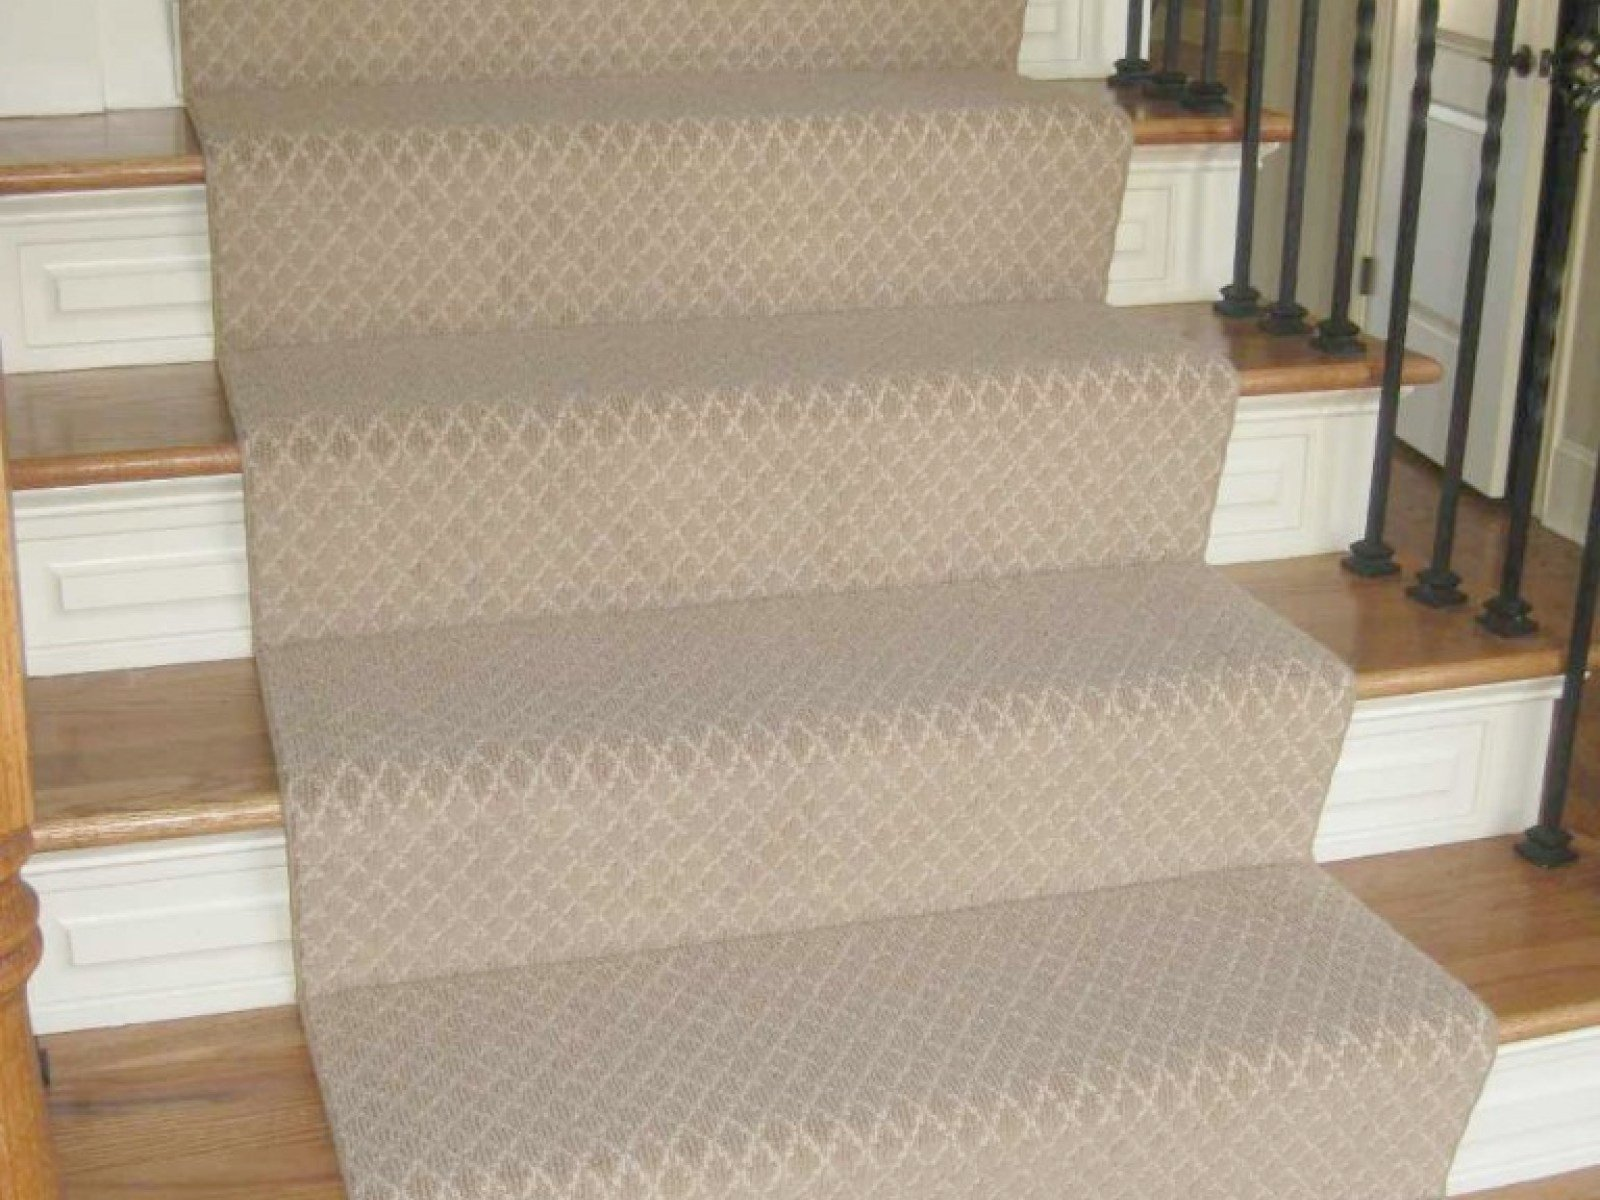 carpet runner for stairs home depot photo - 3